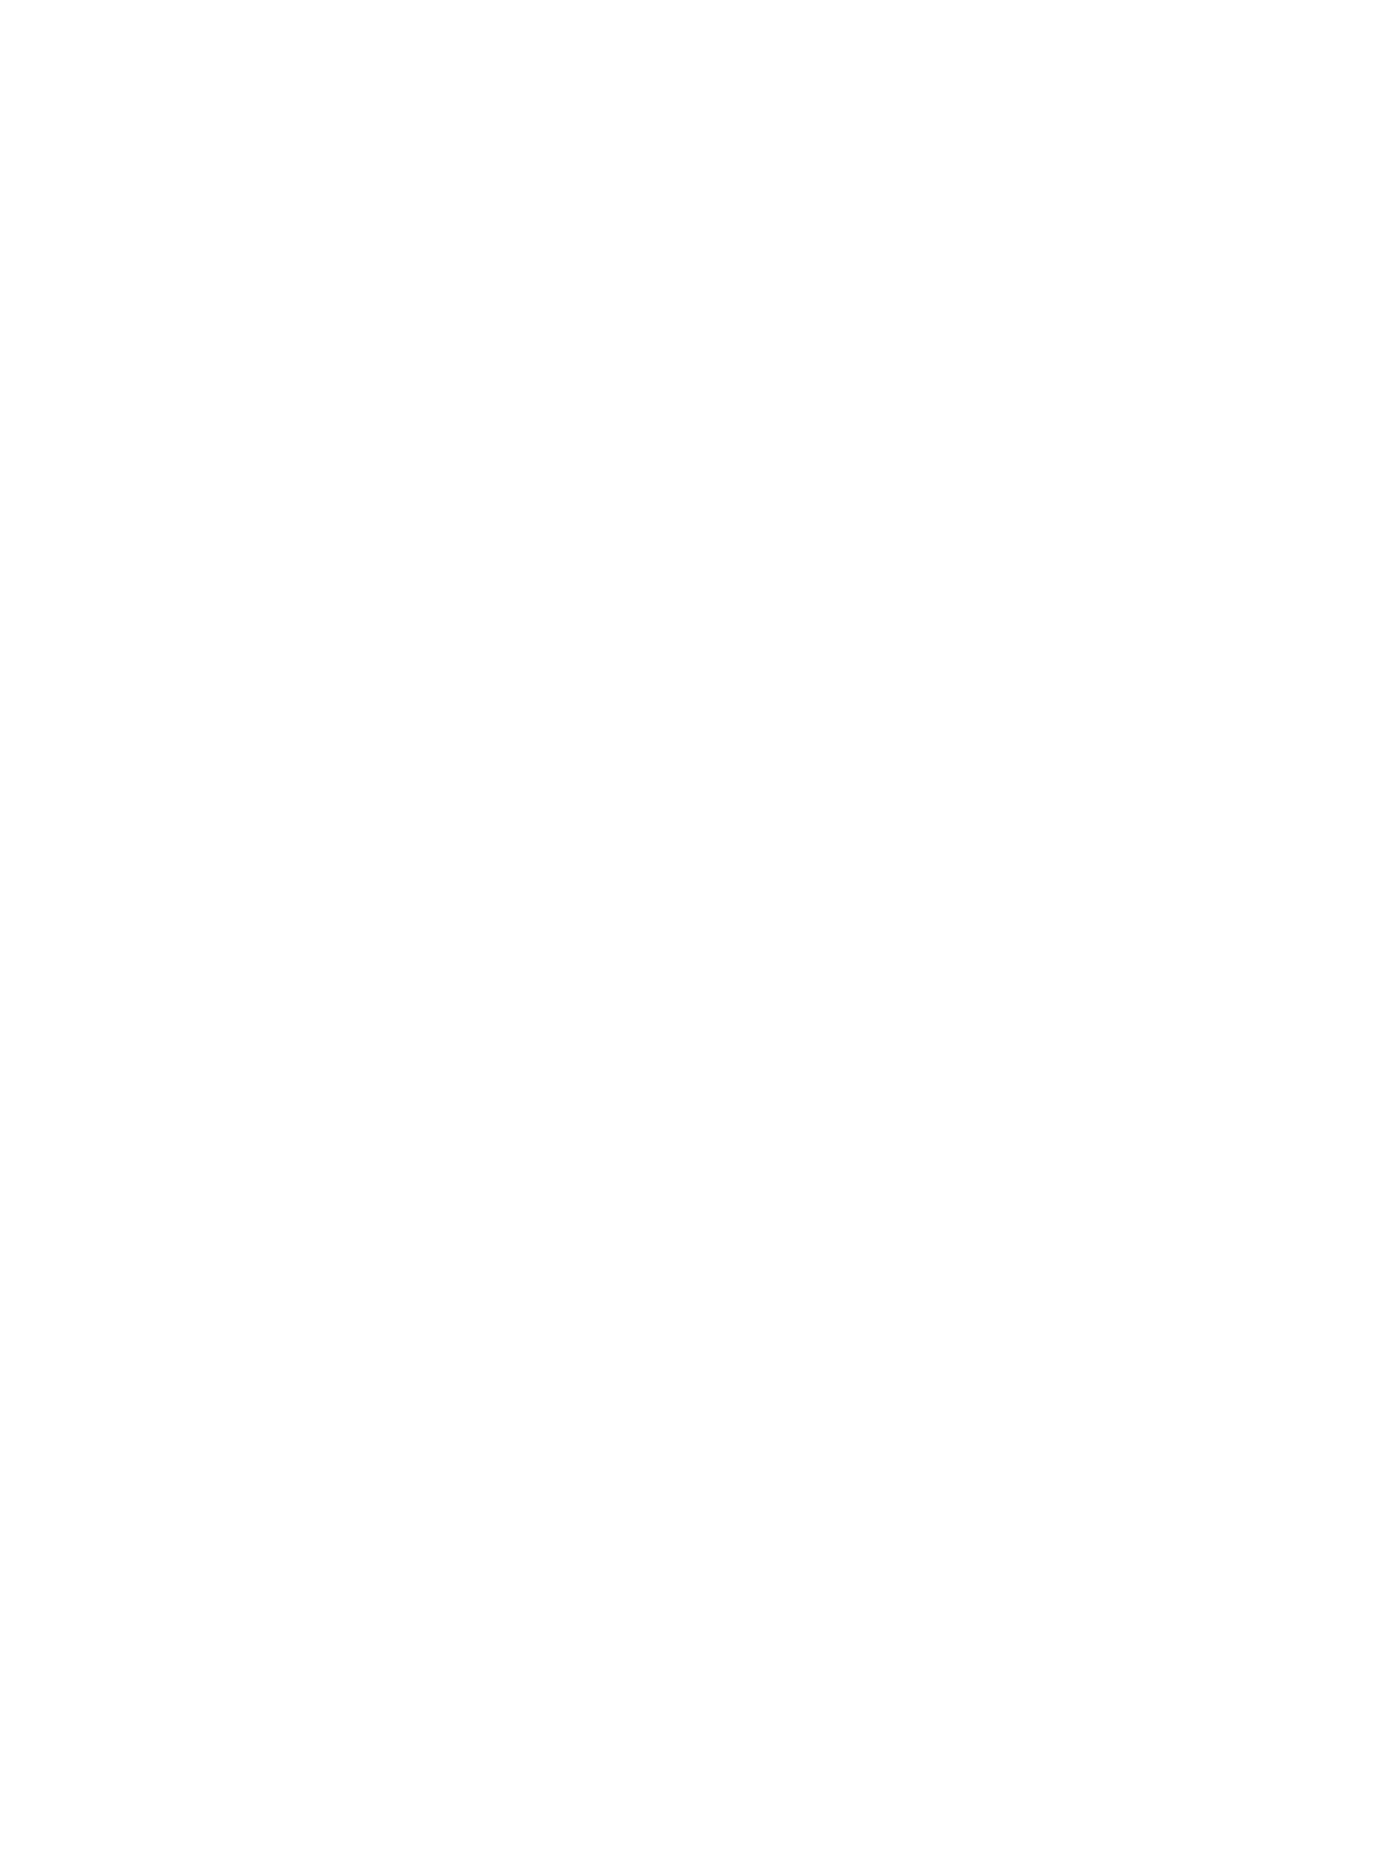 Business Journals Leadership Trust